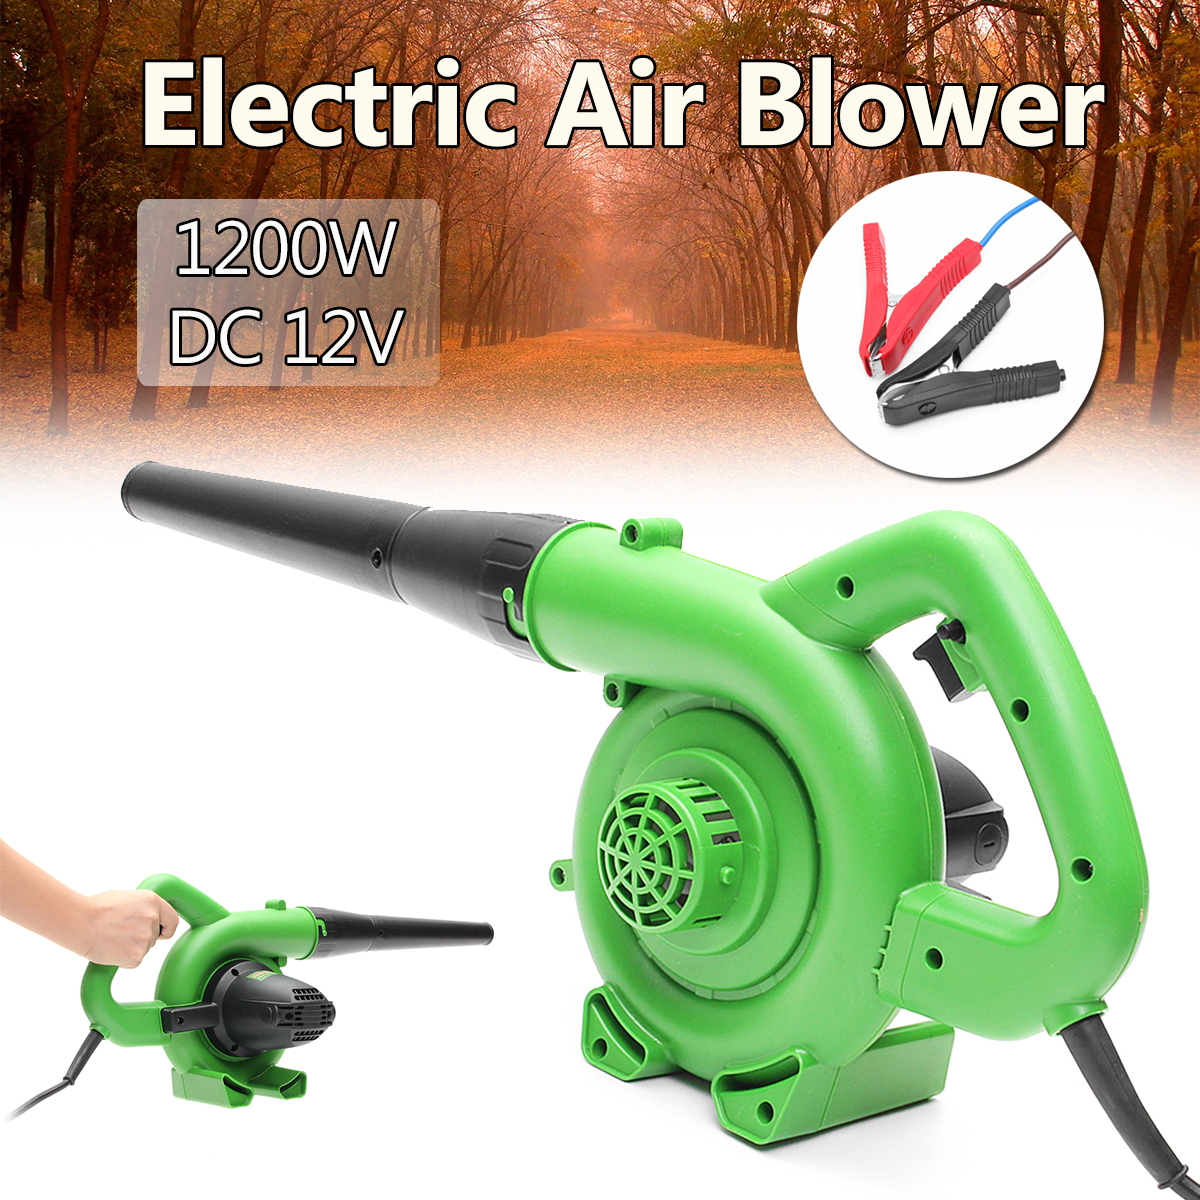 1200W Portable Electric Air Blower Handhs